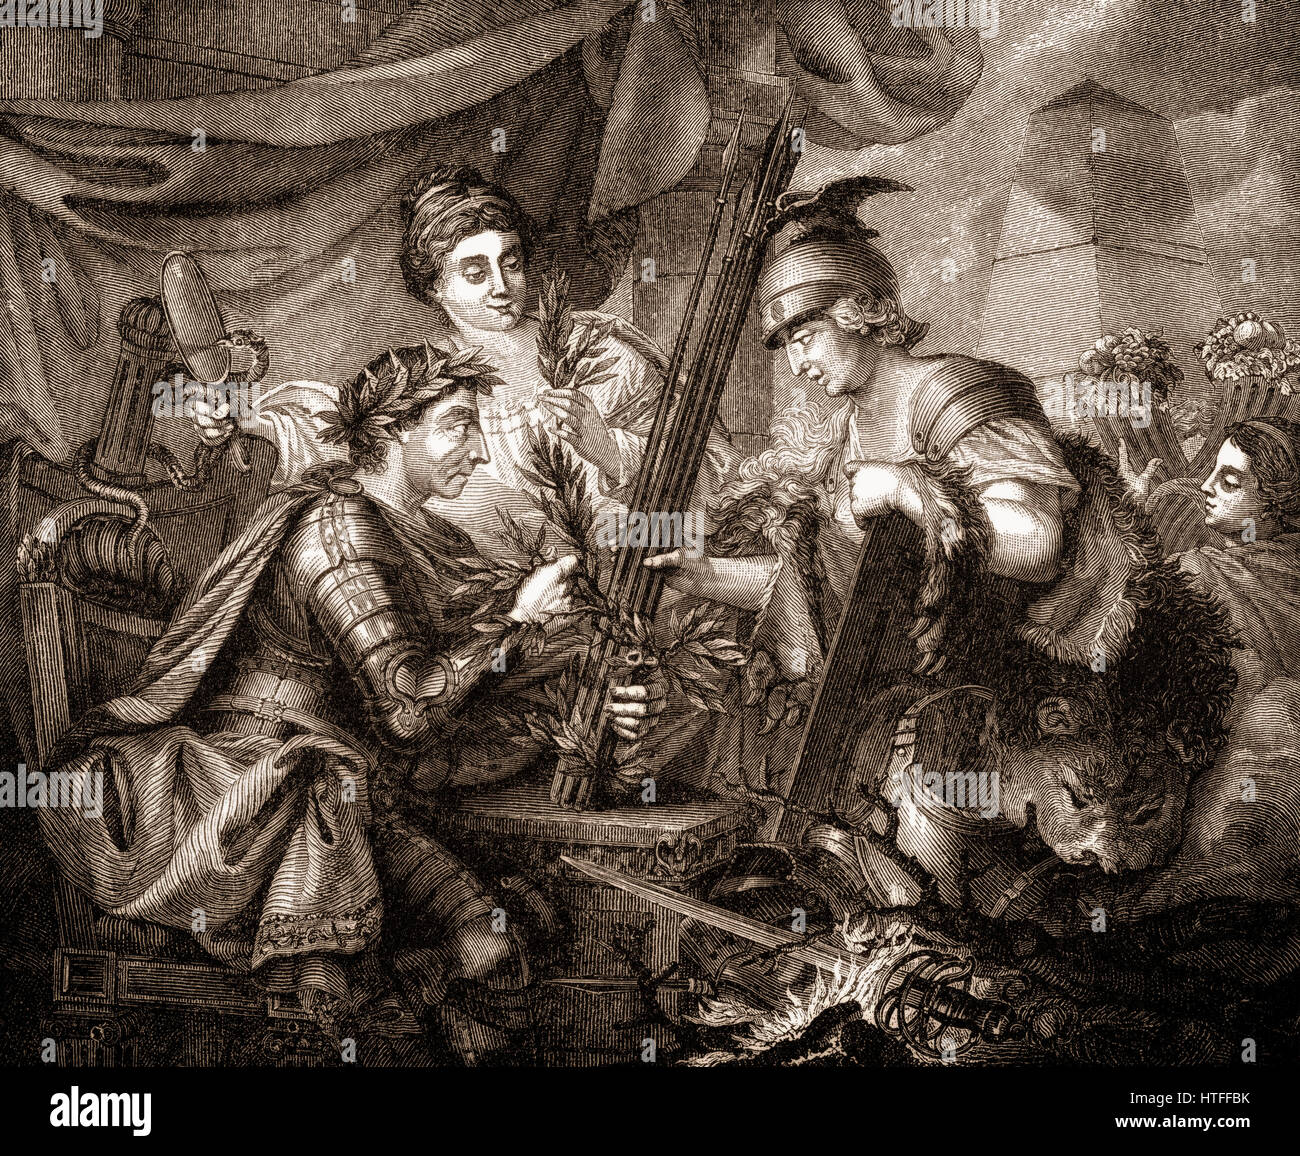 Frederick II of Prussia binding together the League of Princes, allegorical representation of 1786 - Stock Image